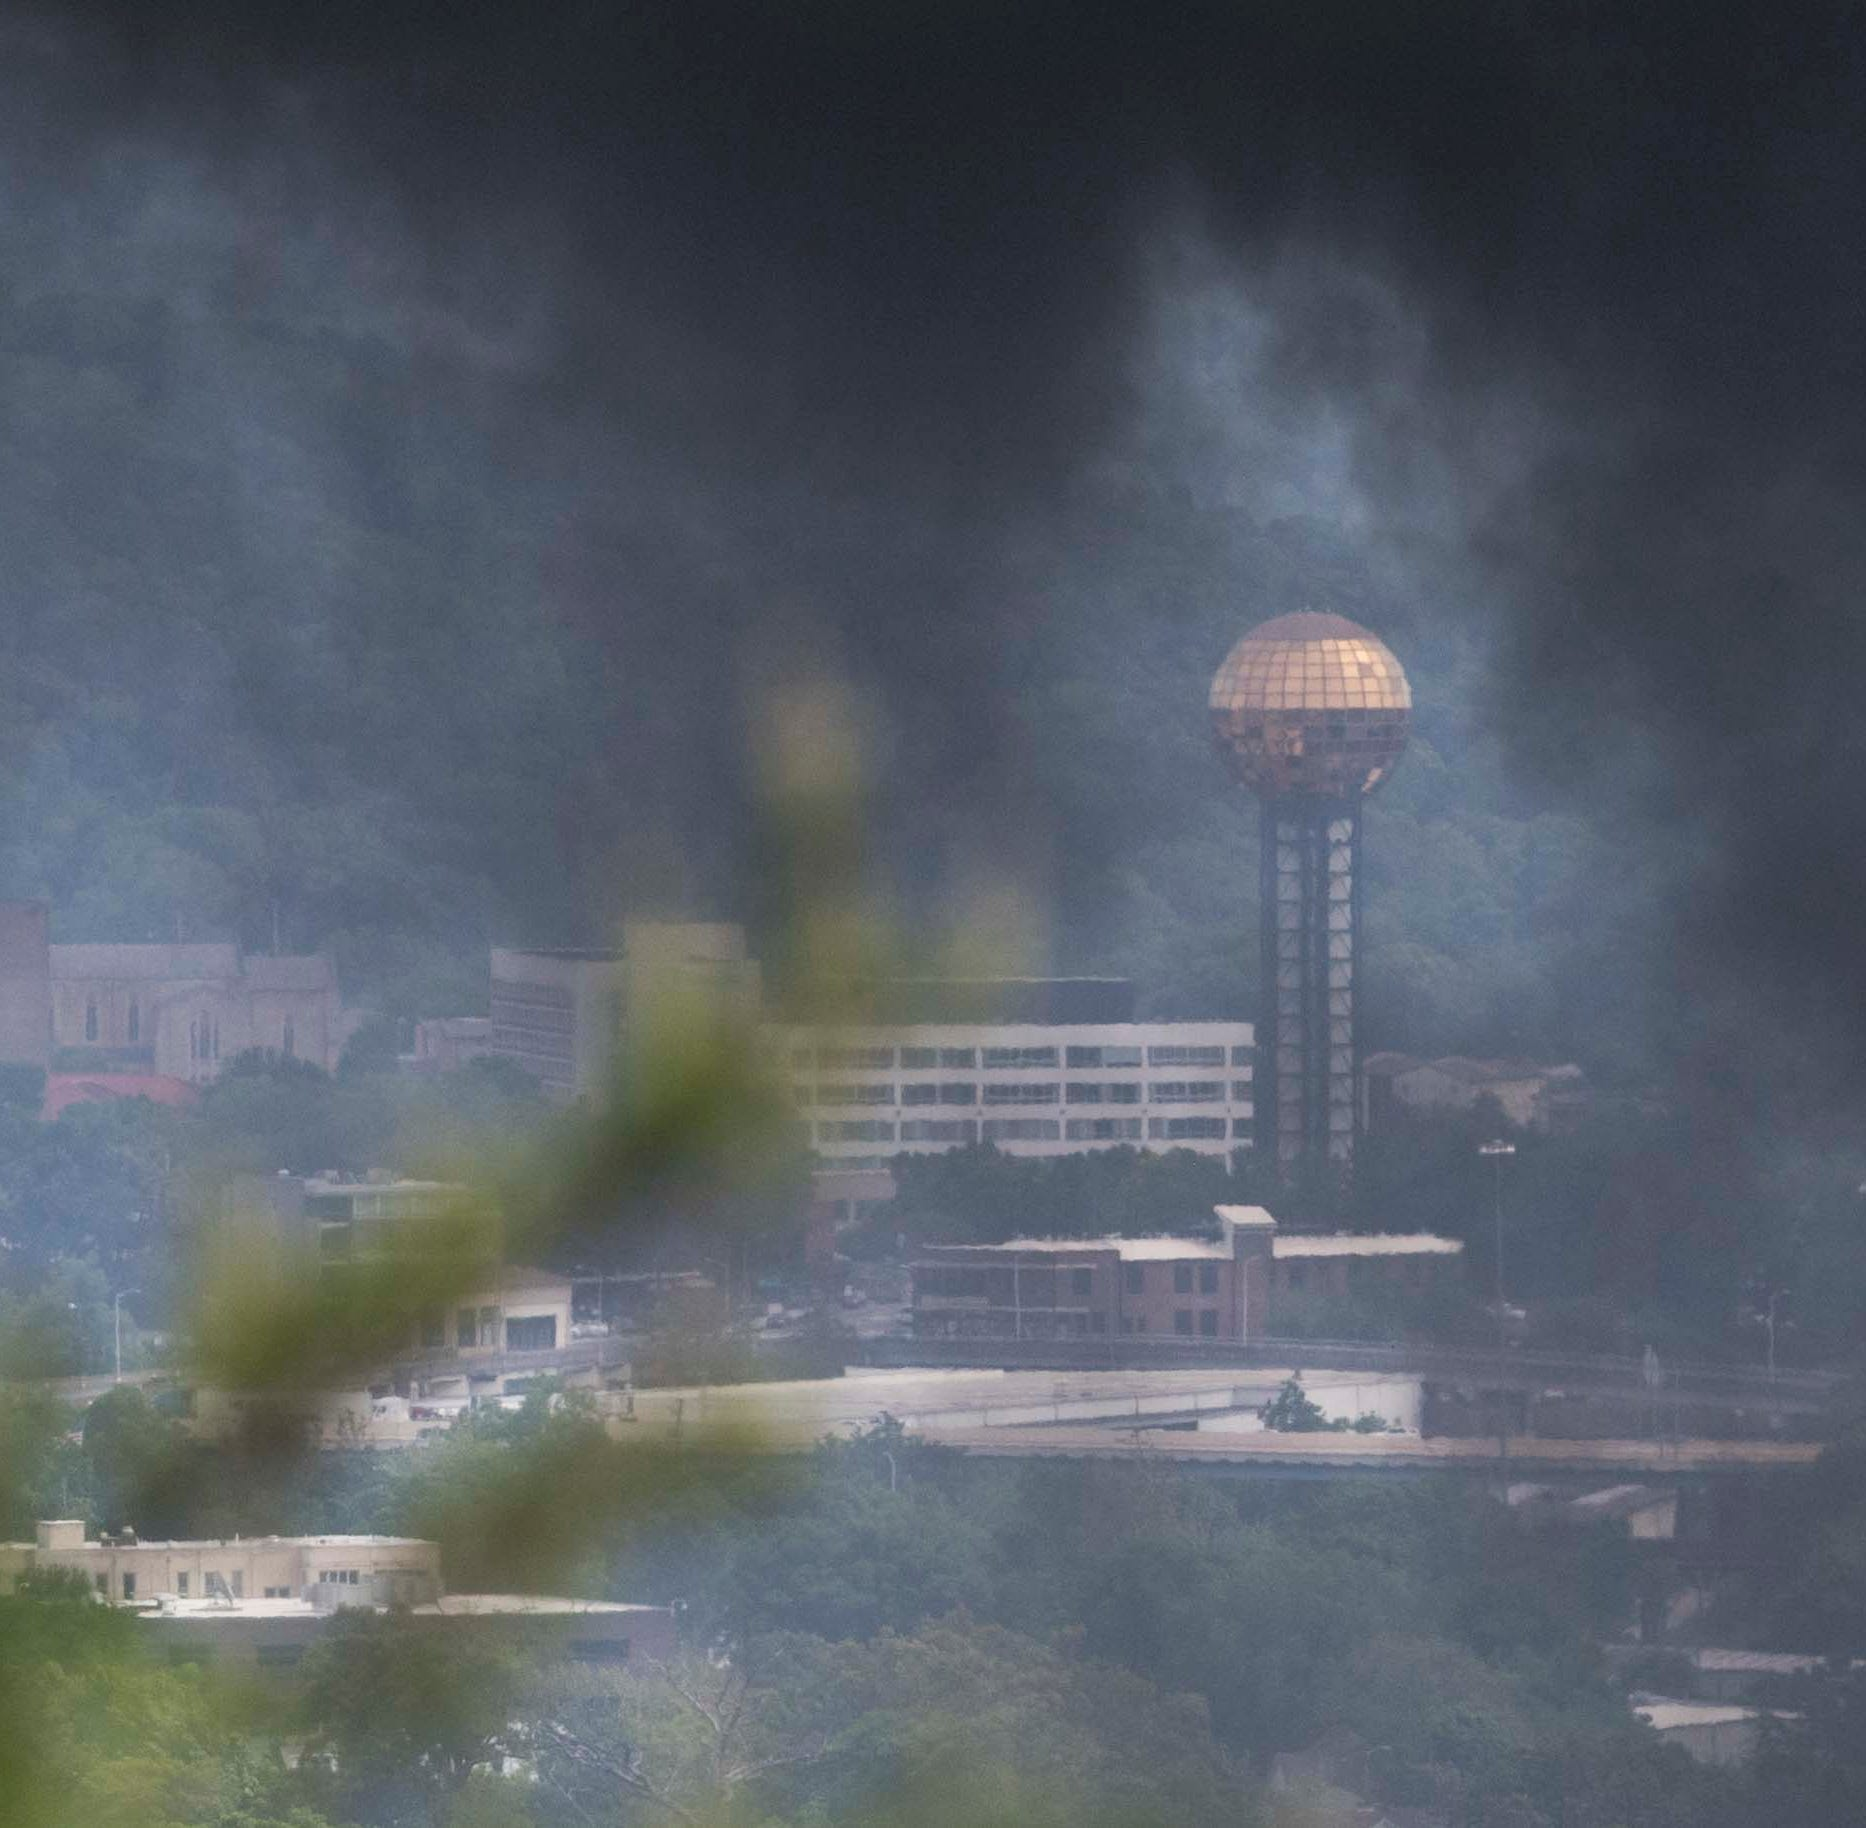 Knoxville fire: 'If you can see or smell smoke, move away from the area'